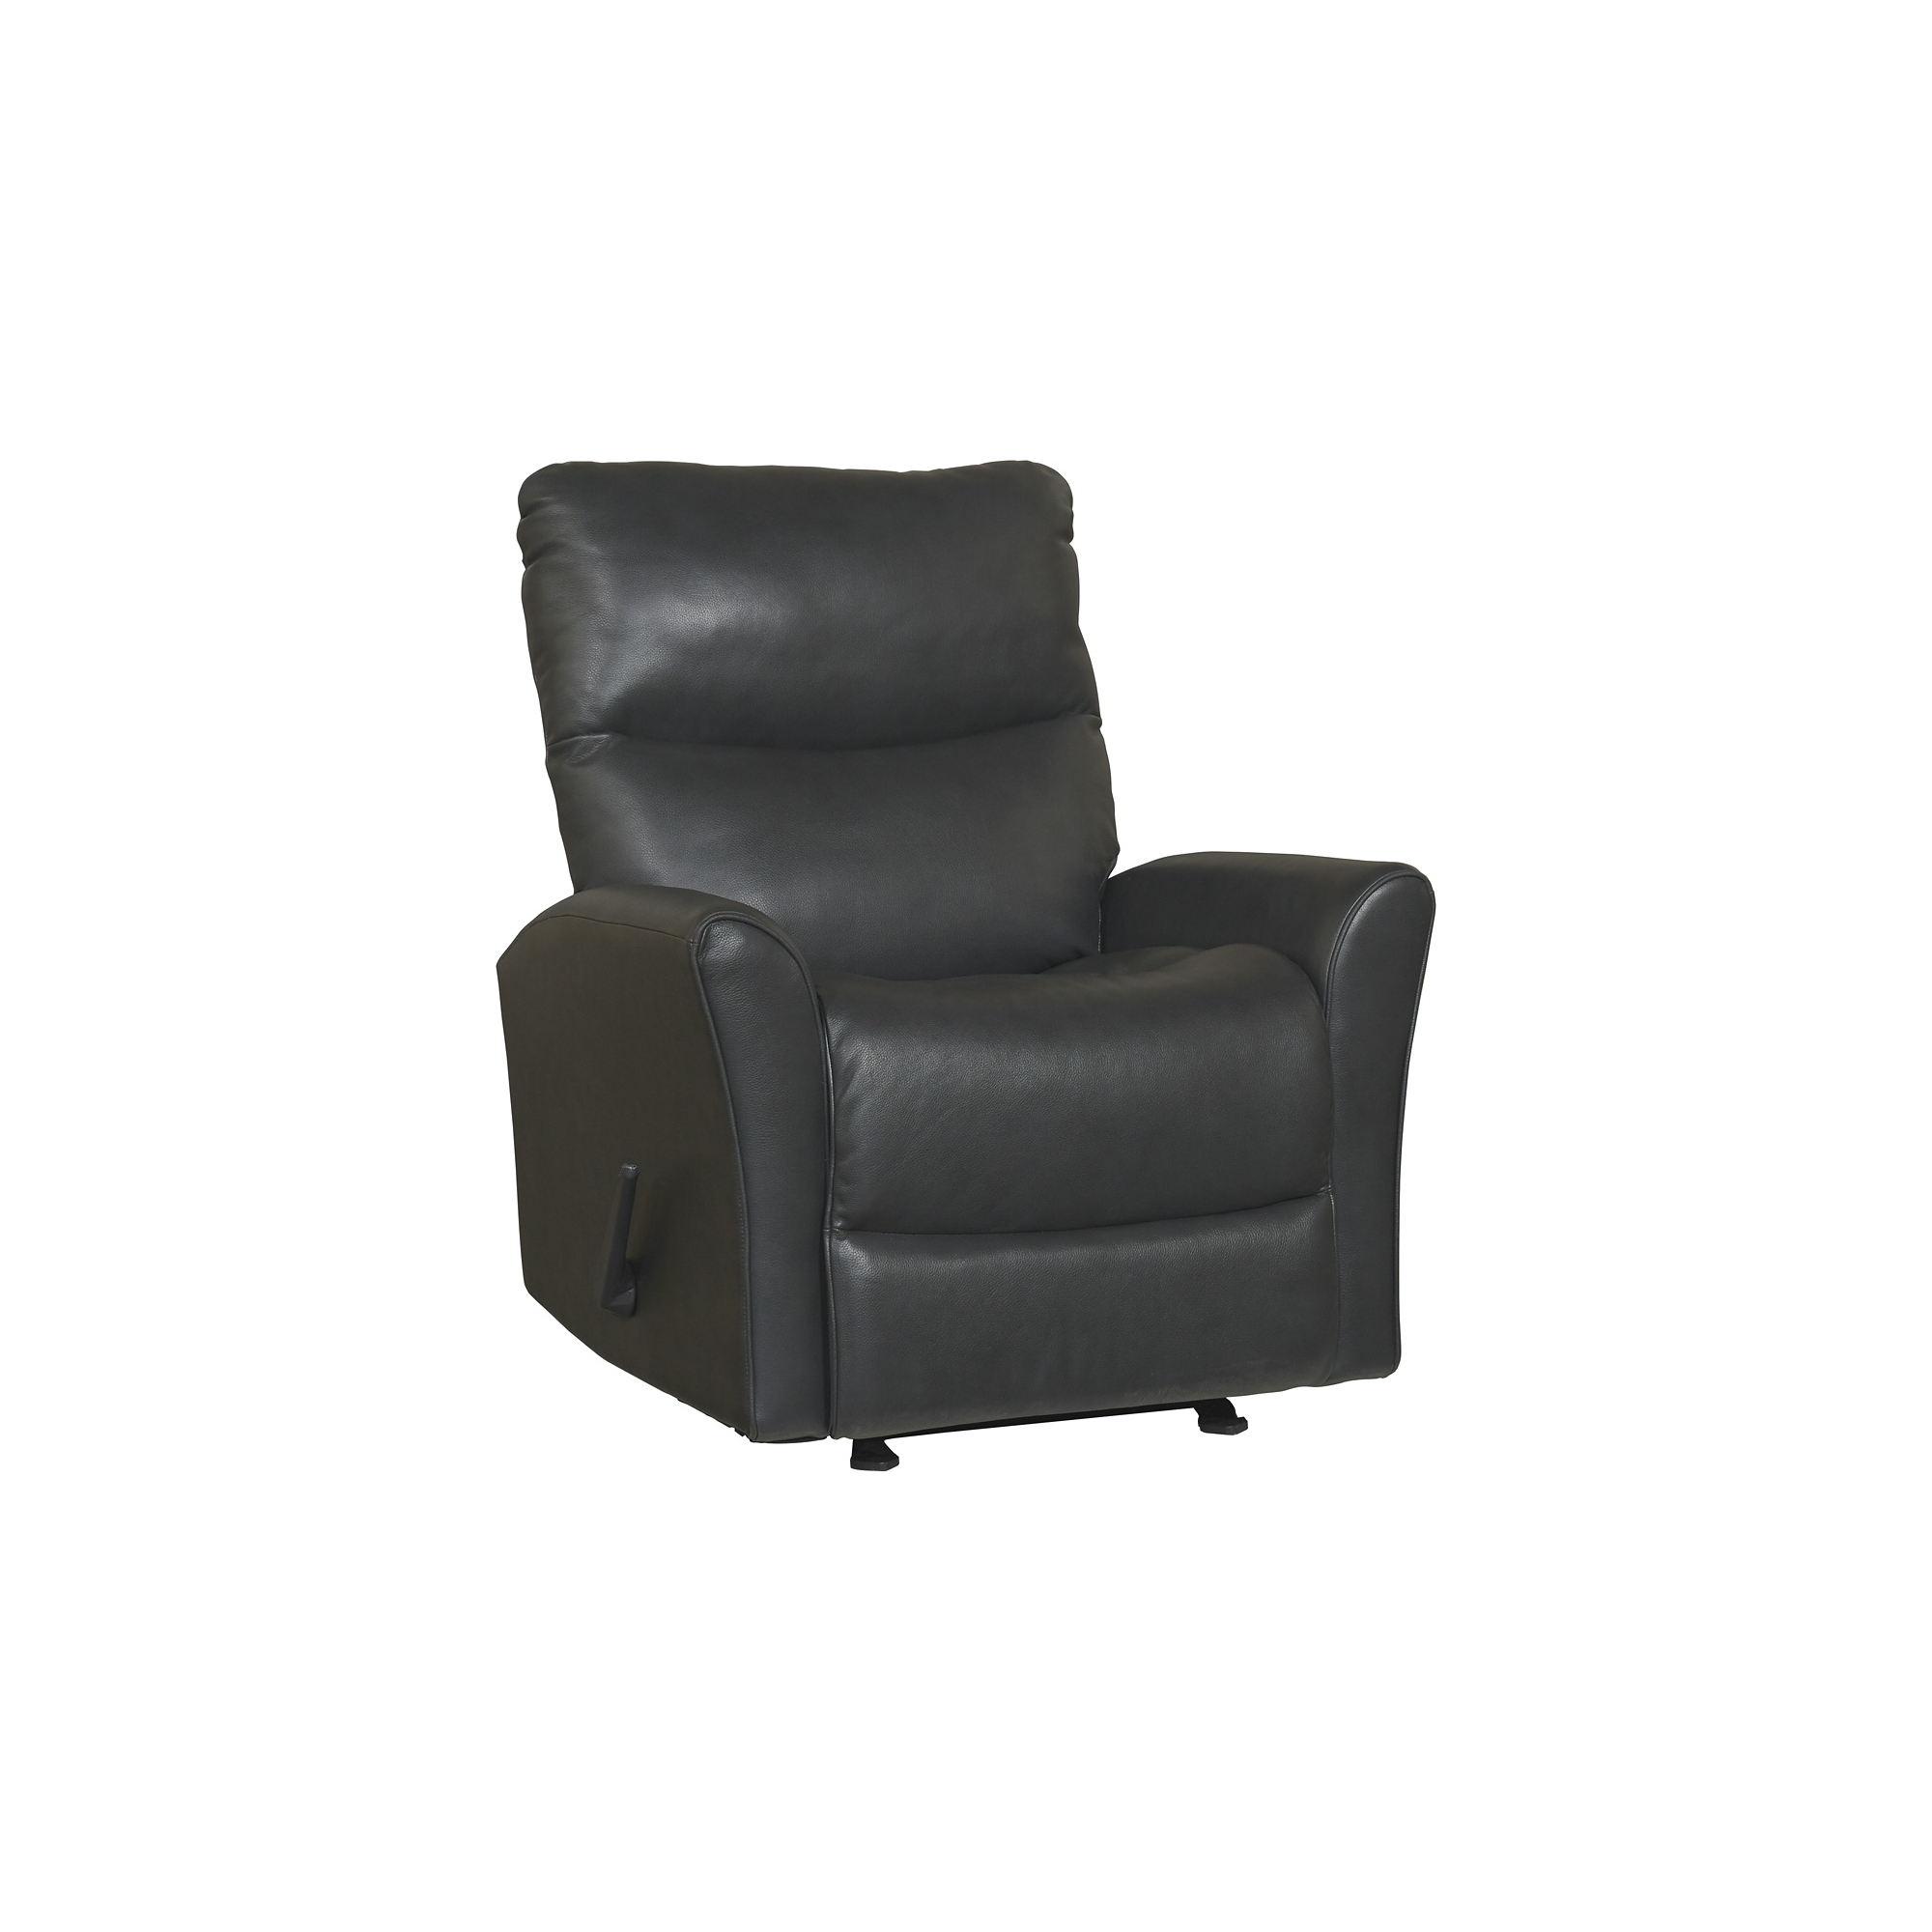 Piper Recliner Find The Perfect Style Havertys Heart Leather Main Image